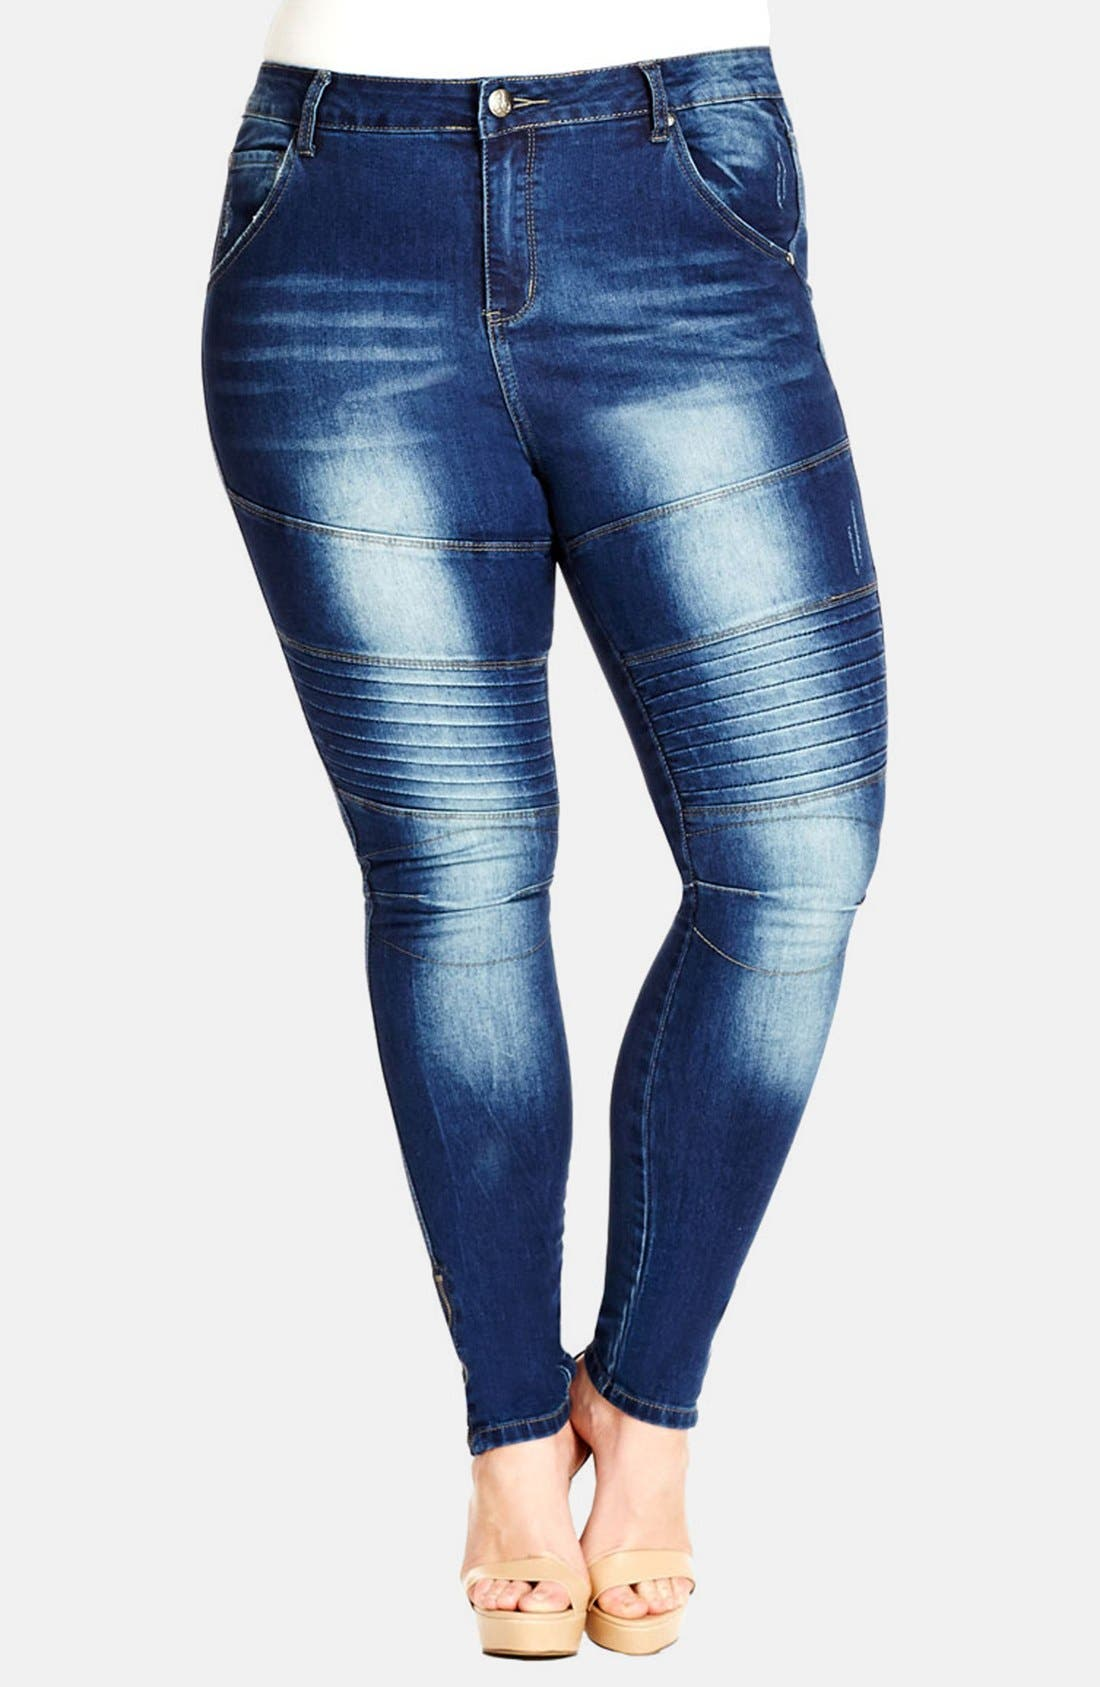 Alternate Image 1 Selected - City Chic 'MX Apple' Stretch Skinny Jeans (Medium Denim) (Plus Size)